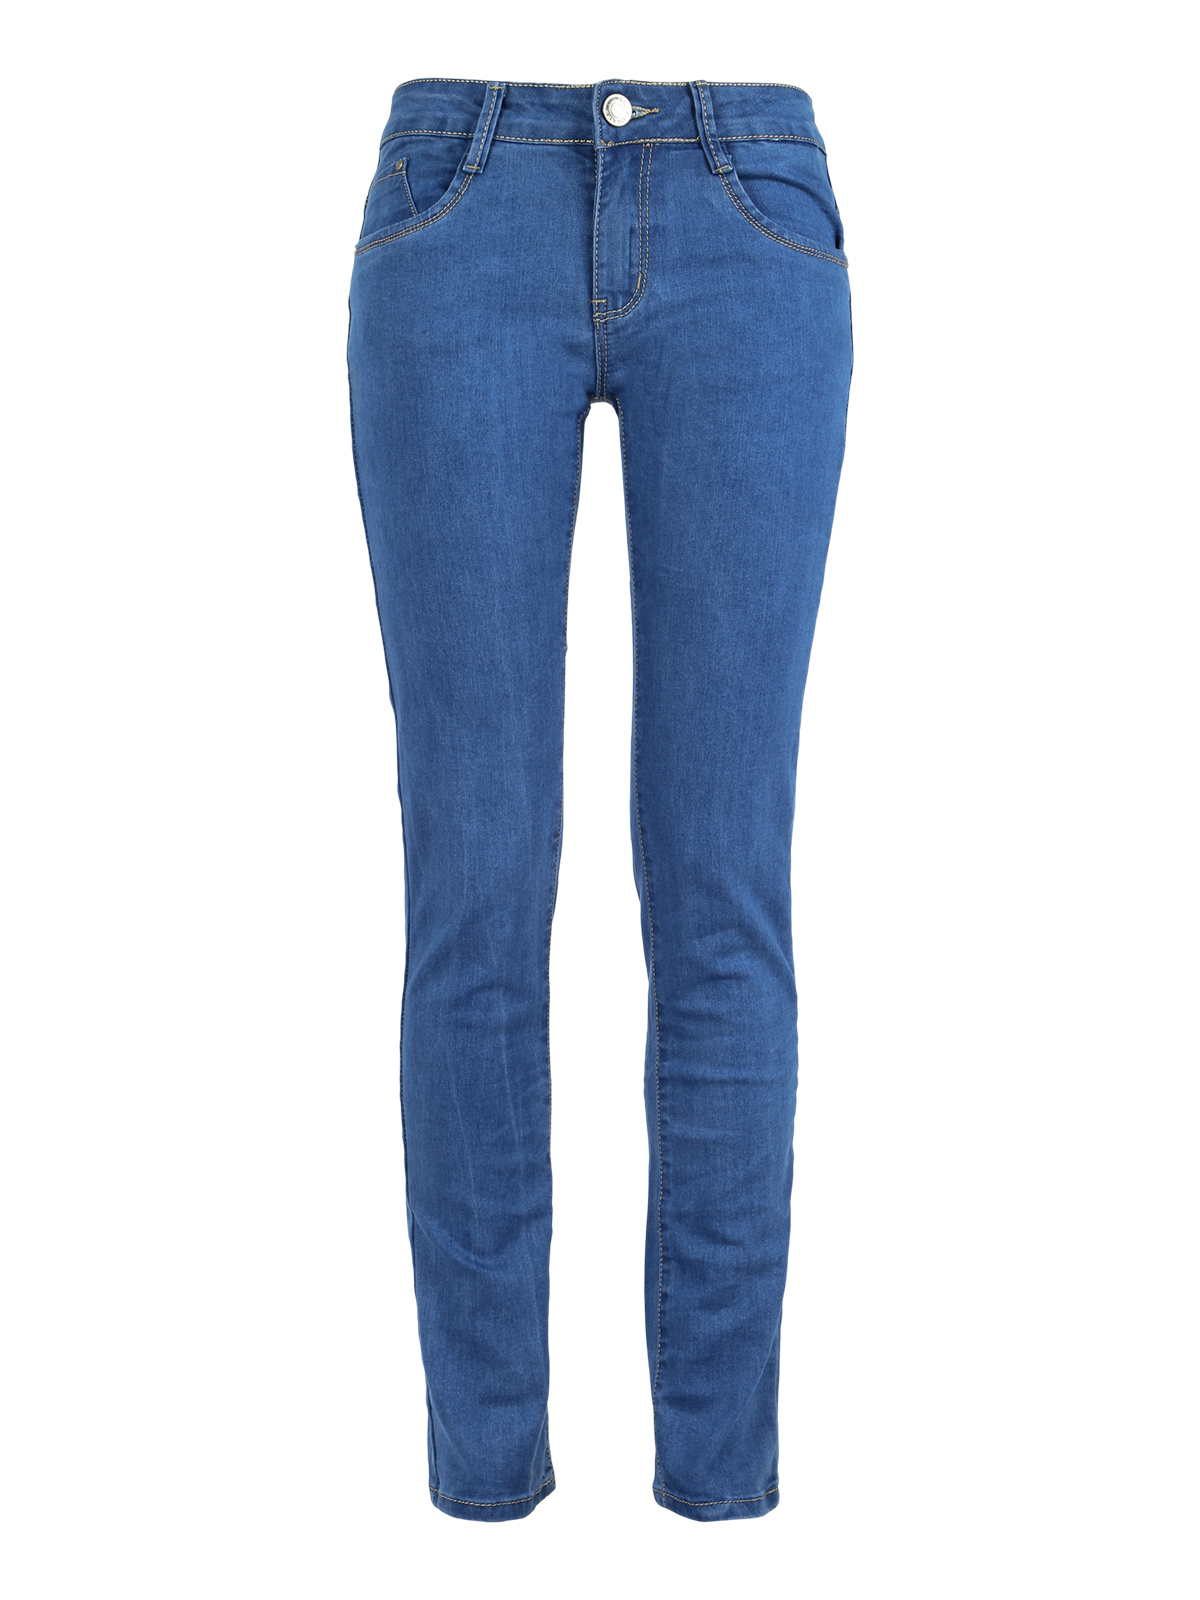 MARSHALL ANGEL Stretchy Jeans Regular Fit